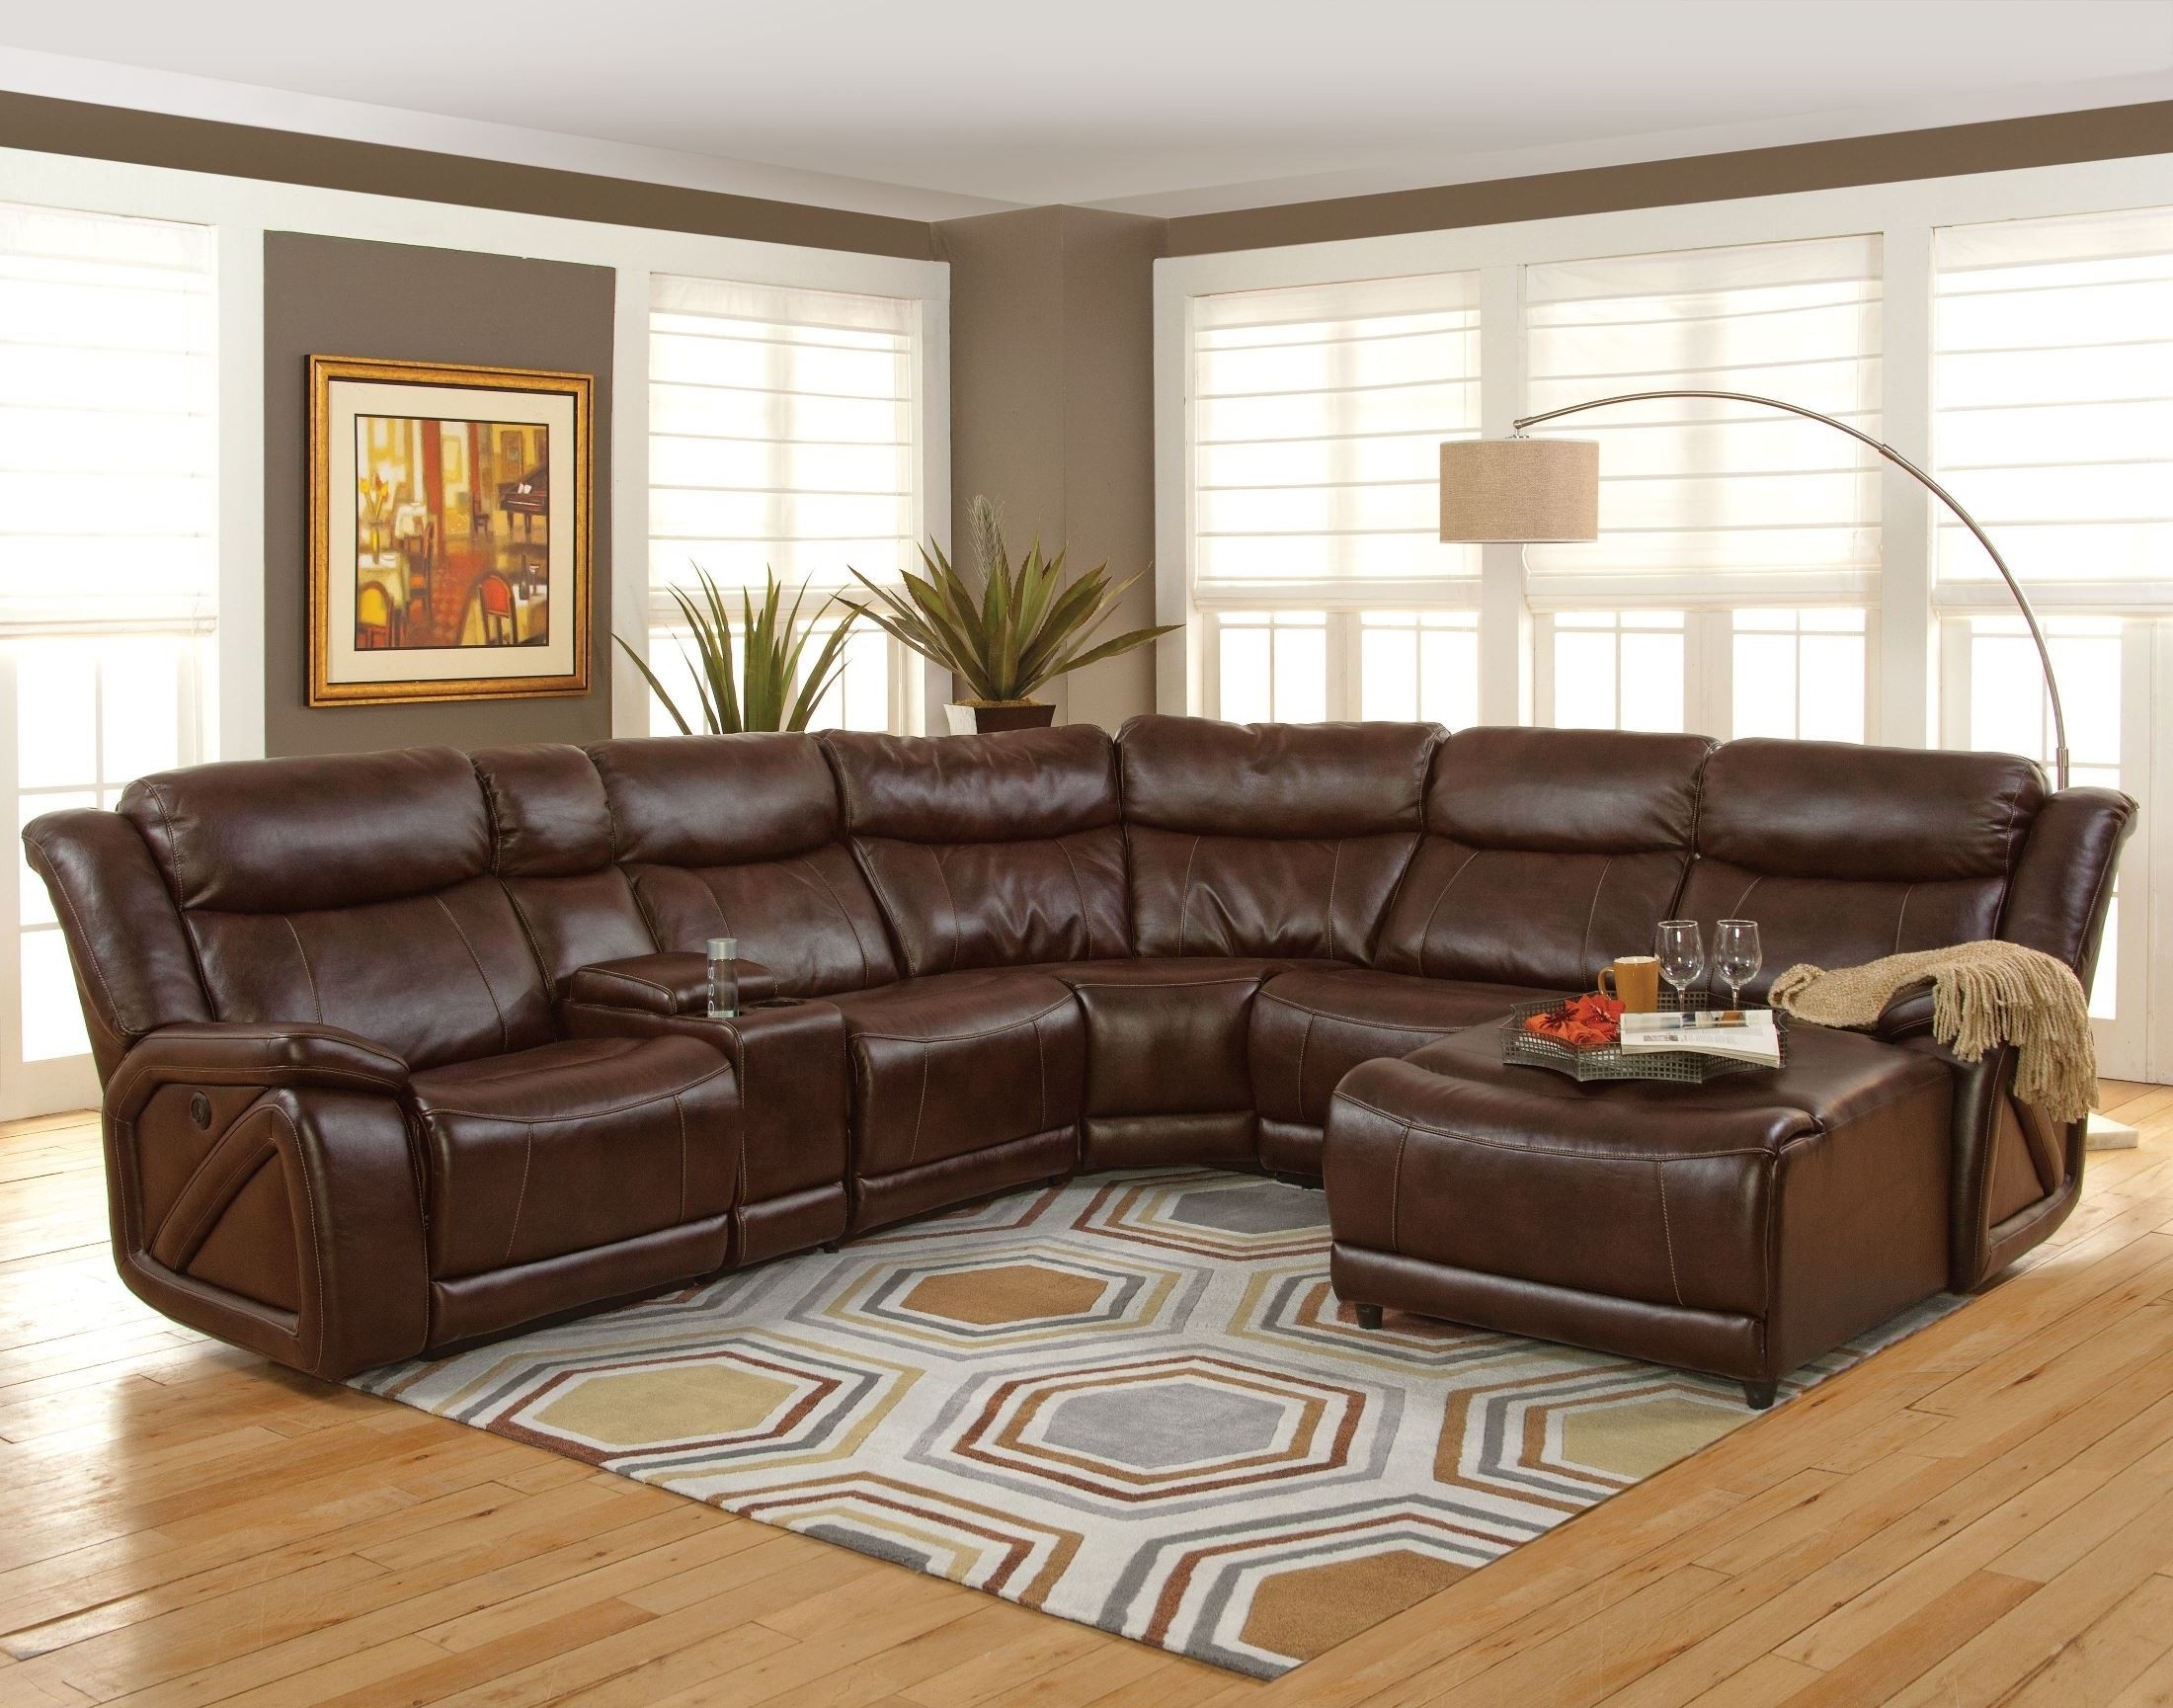 Turdur 3 Piece Sectionals With Laf Loveseat For Widely Used Park Place Premier Brown Laf Sectional From New Classics (20 225 17l (View 6 of 20)